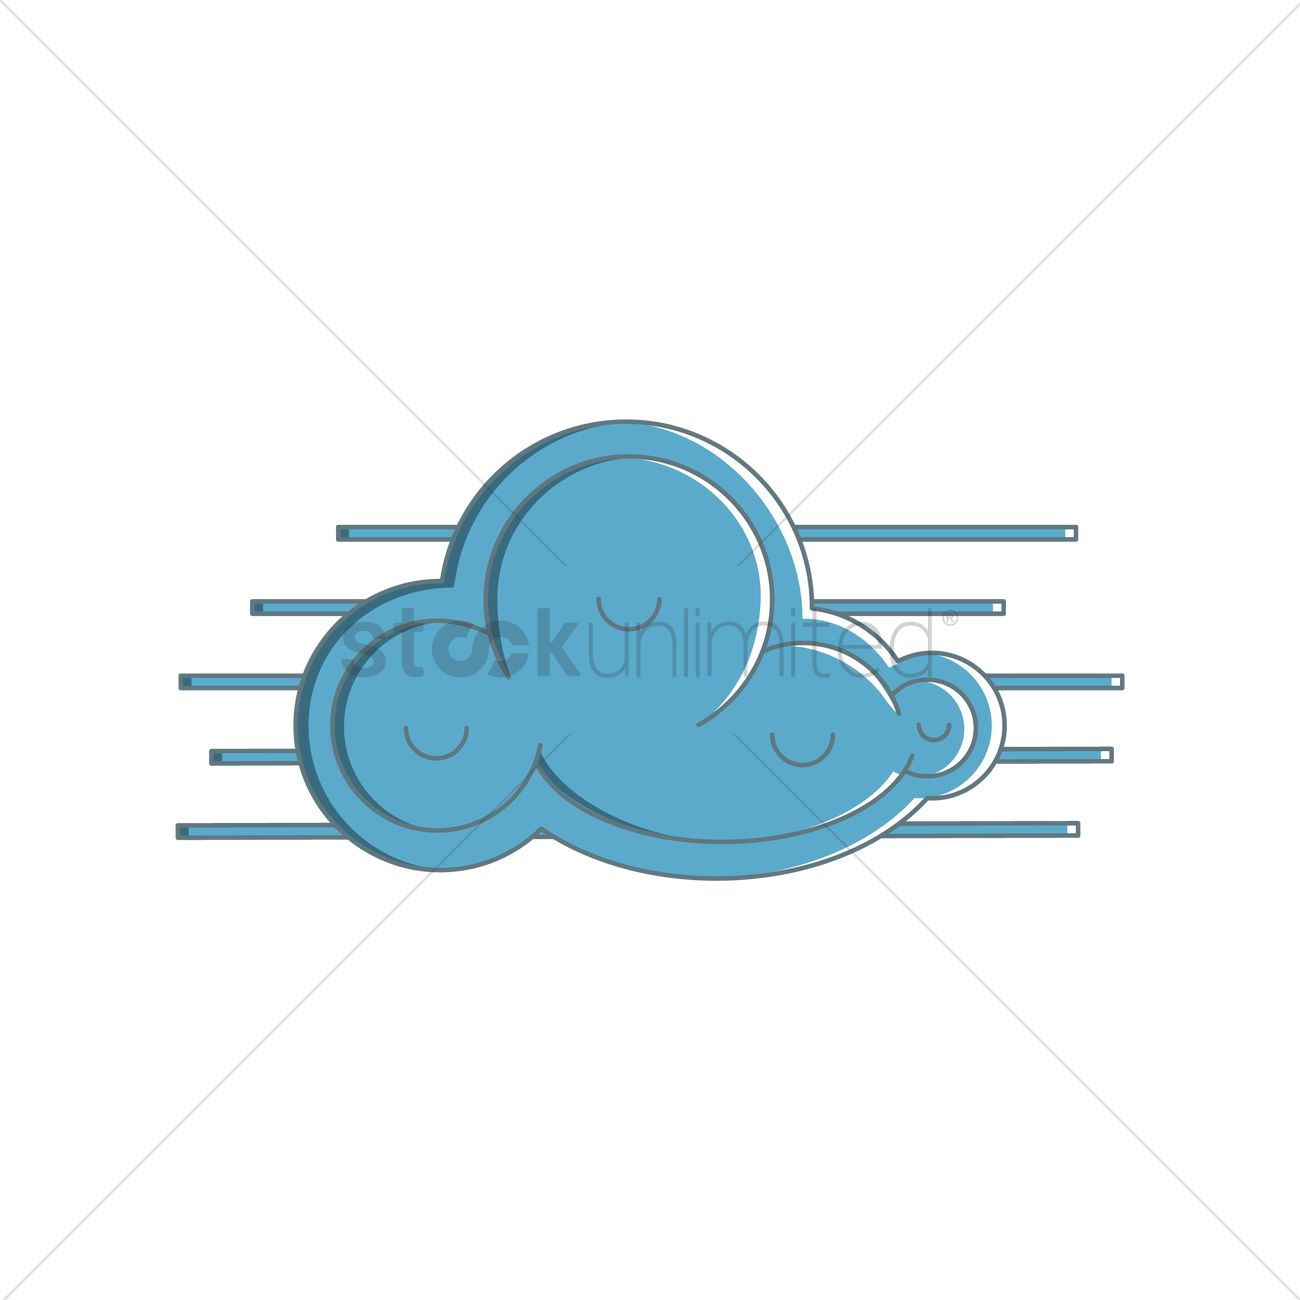 Free Cloud Vector Image - 1364520 | StockUnlimited